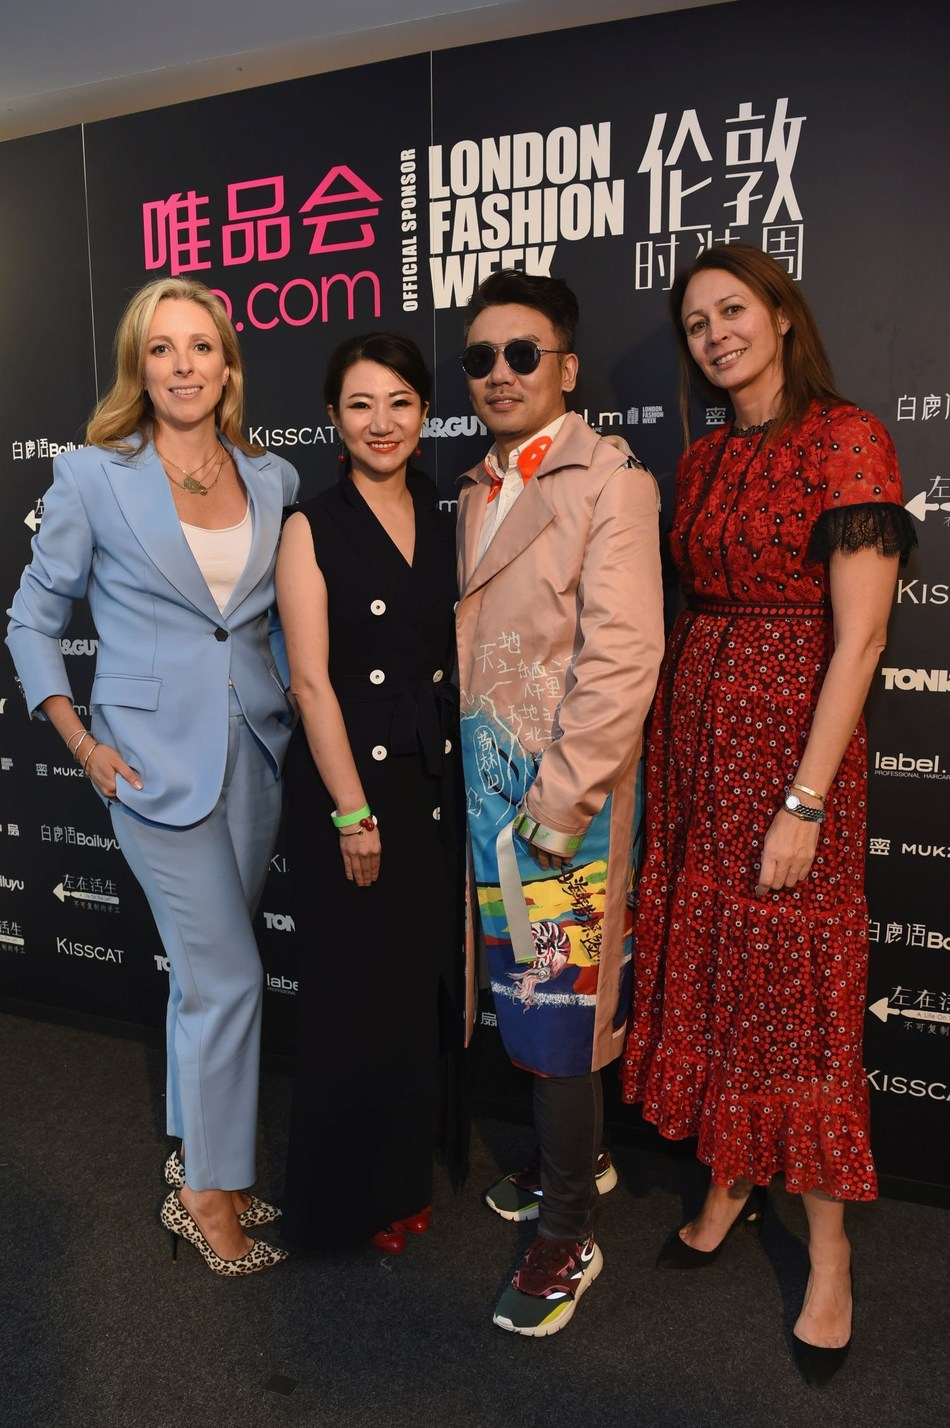 Hosted at the BFC showspace on 13th September 2018, Chinese e-commerce powerhouse  Vip.com  presents four Chinese designers [Mukzin, Bailuyu, A Life On The Left & KISSCAT] at London Fashion Week for the first time. Left to right: Stephanie Phair, BFC Chairman, Susan Sun, VP Merchandising VIP.com, Tony Feng, VP Marketing and Caroline Rush, BFC CEO. (PRNewsfoto/Vip.com)